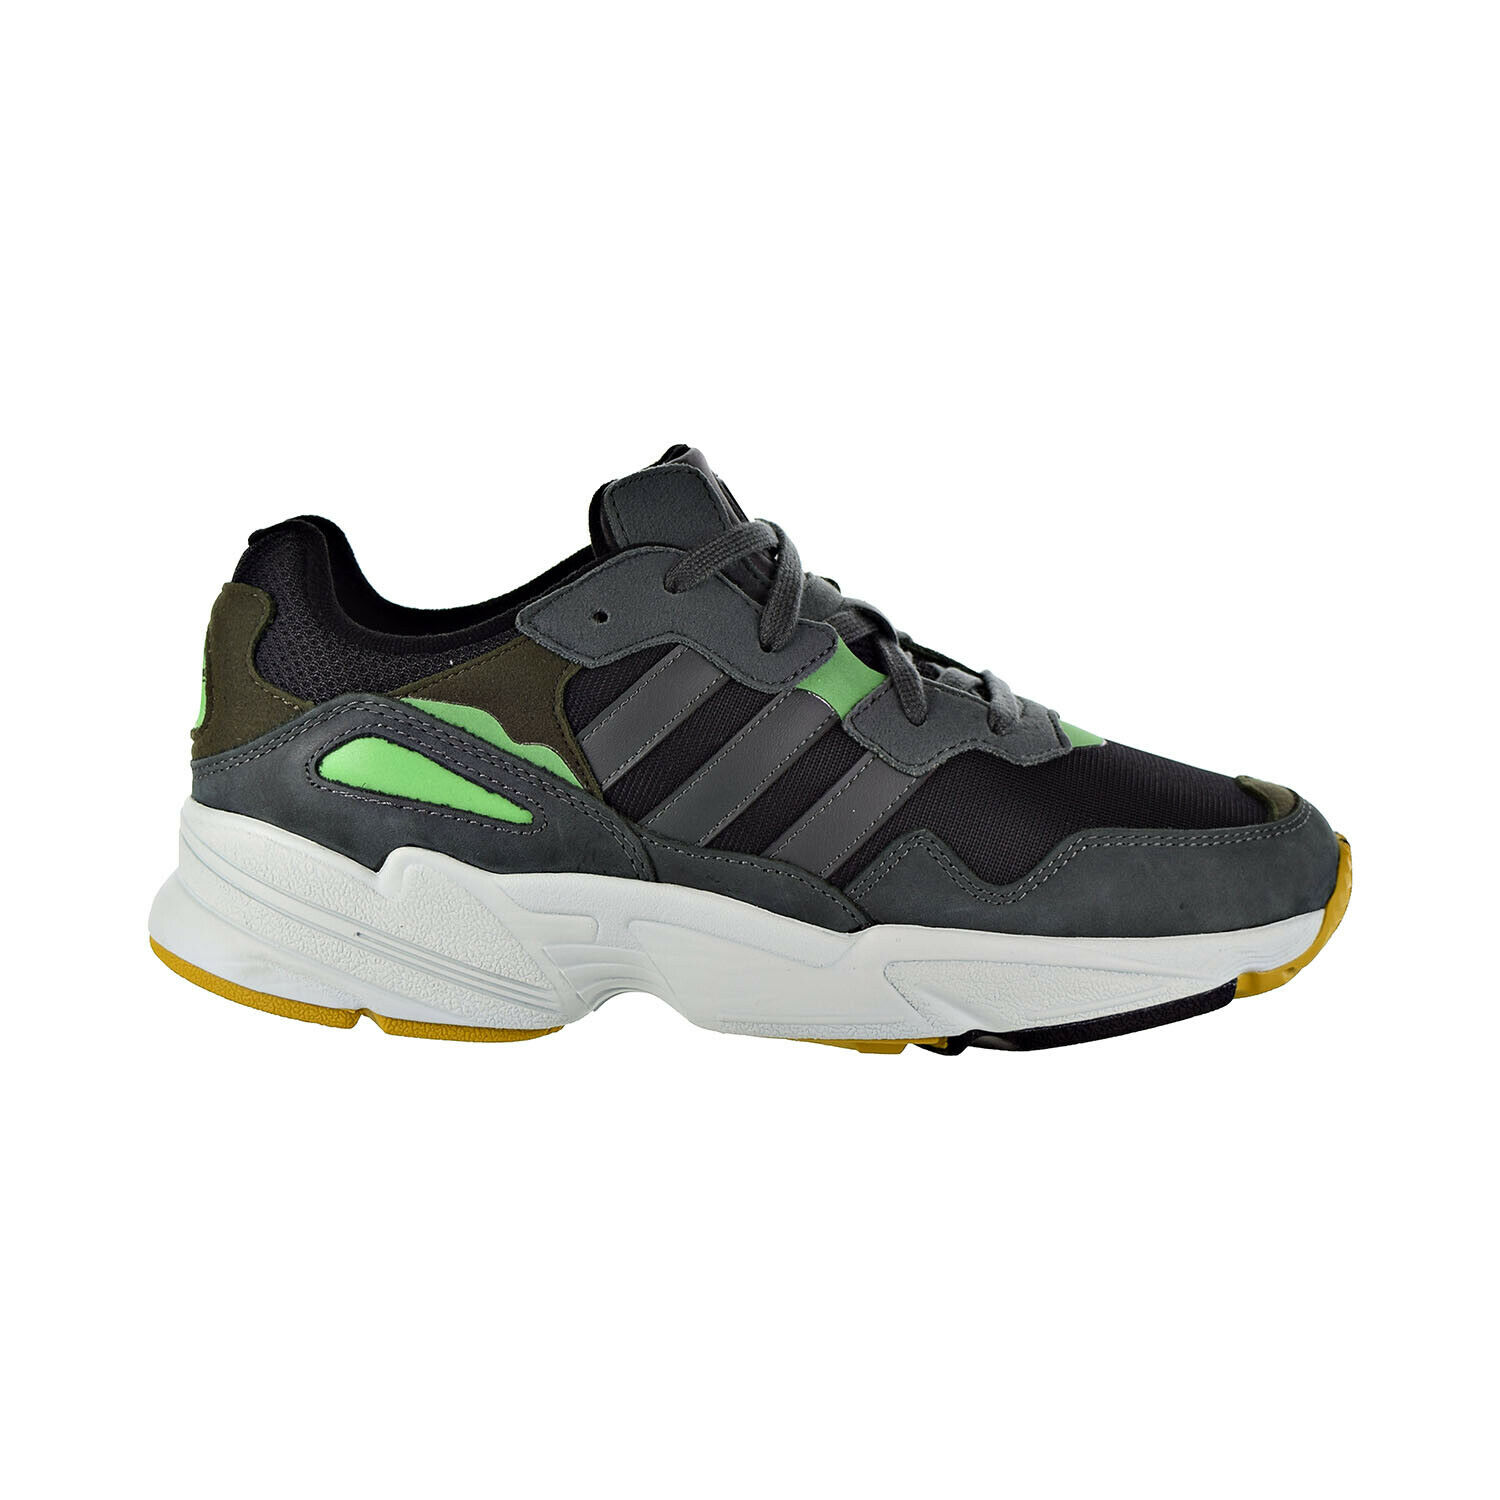 Adidas Yung-96 Men's shoes Core Black Legend Ivy Raw Ochre F35018